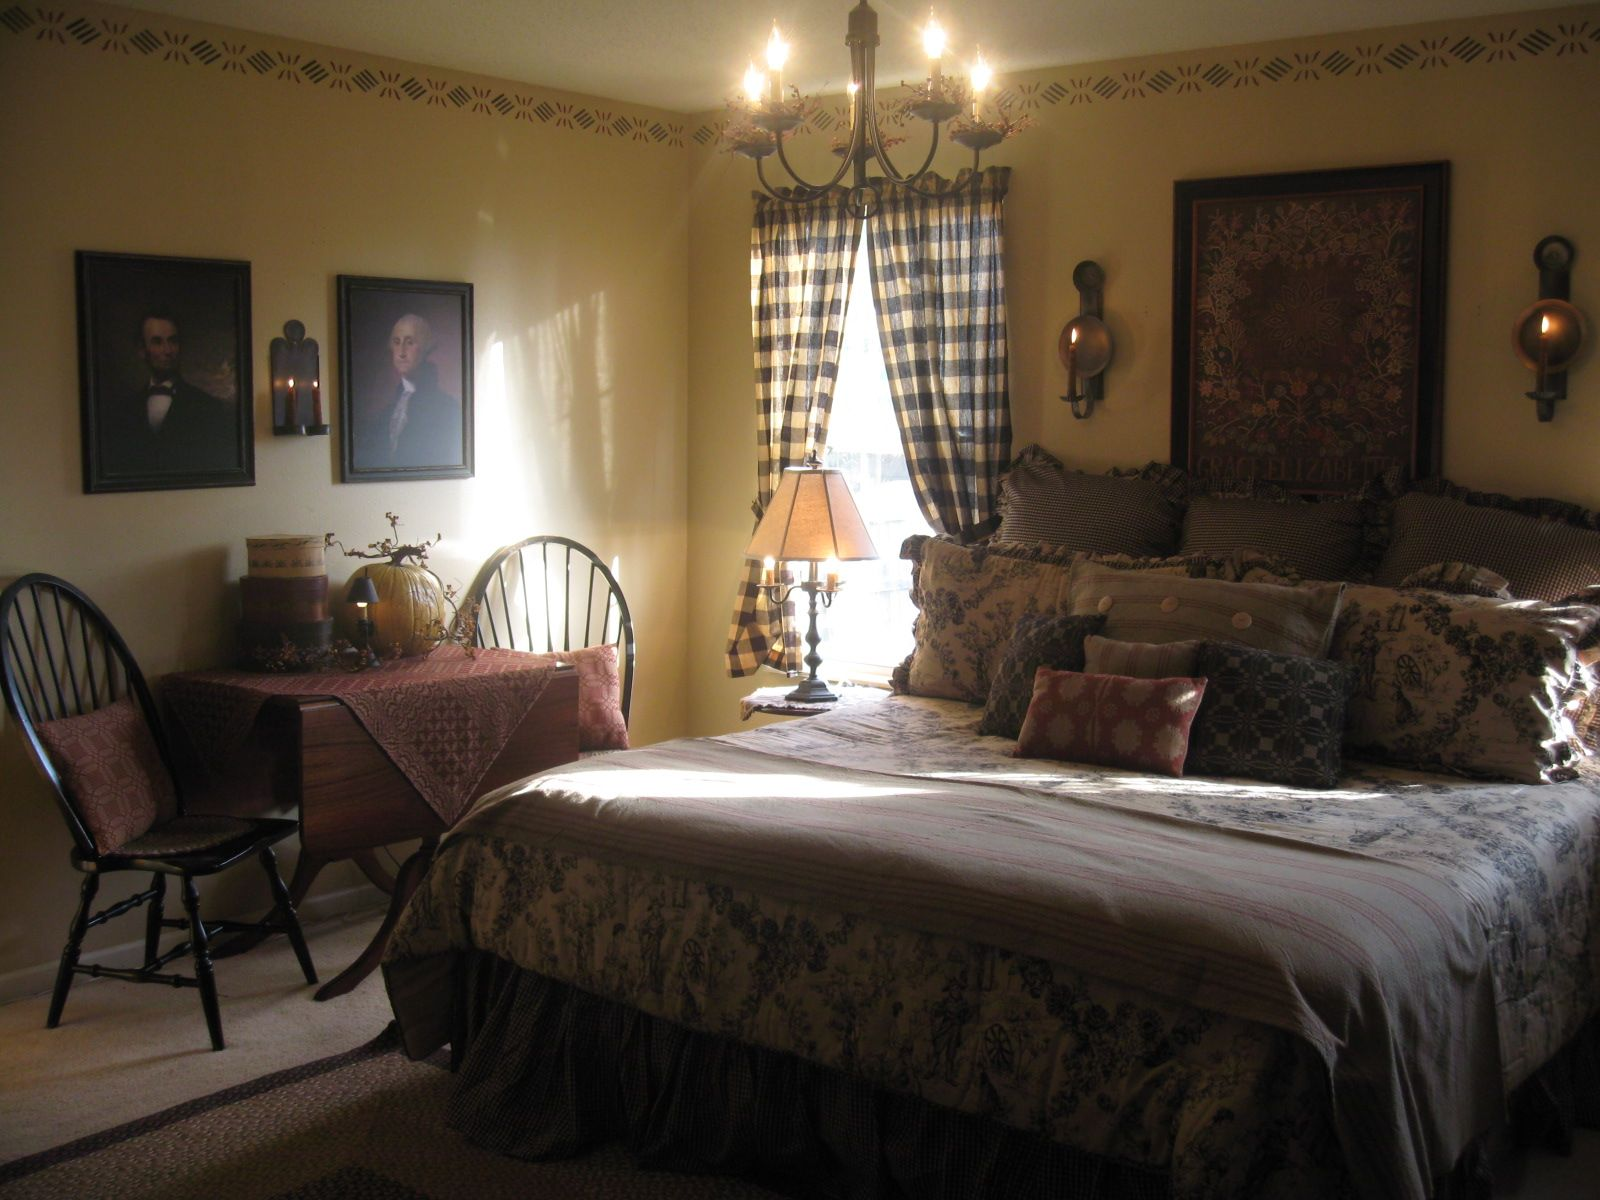 Beautiful colonial style bedroom. Primitive country